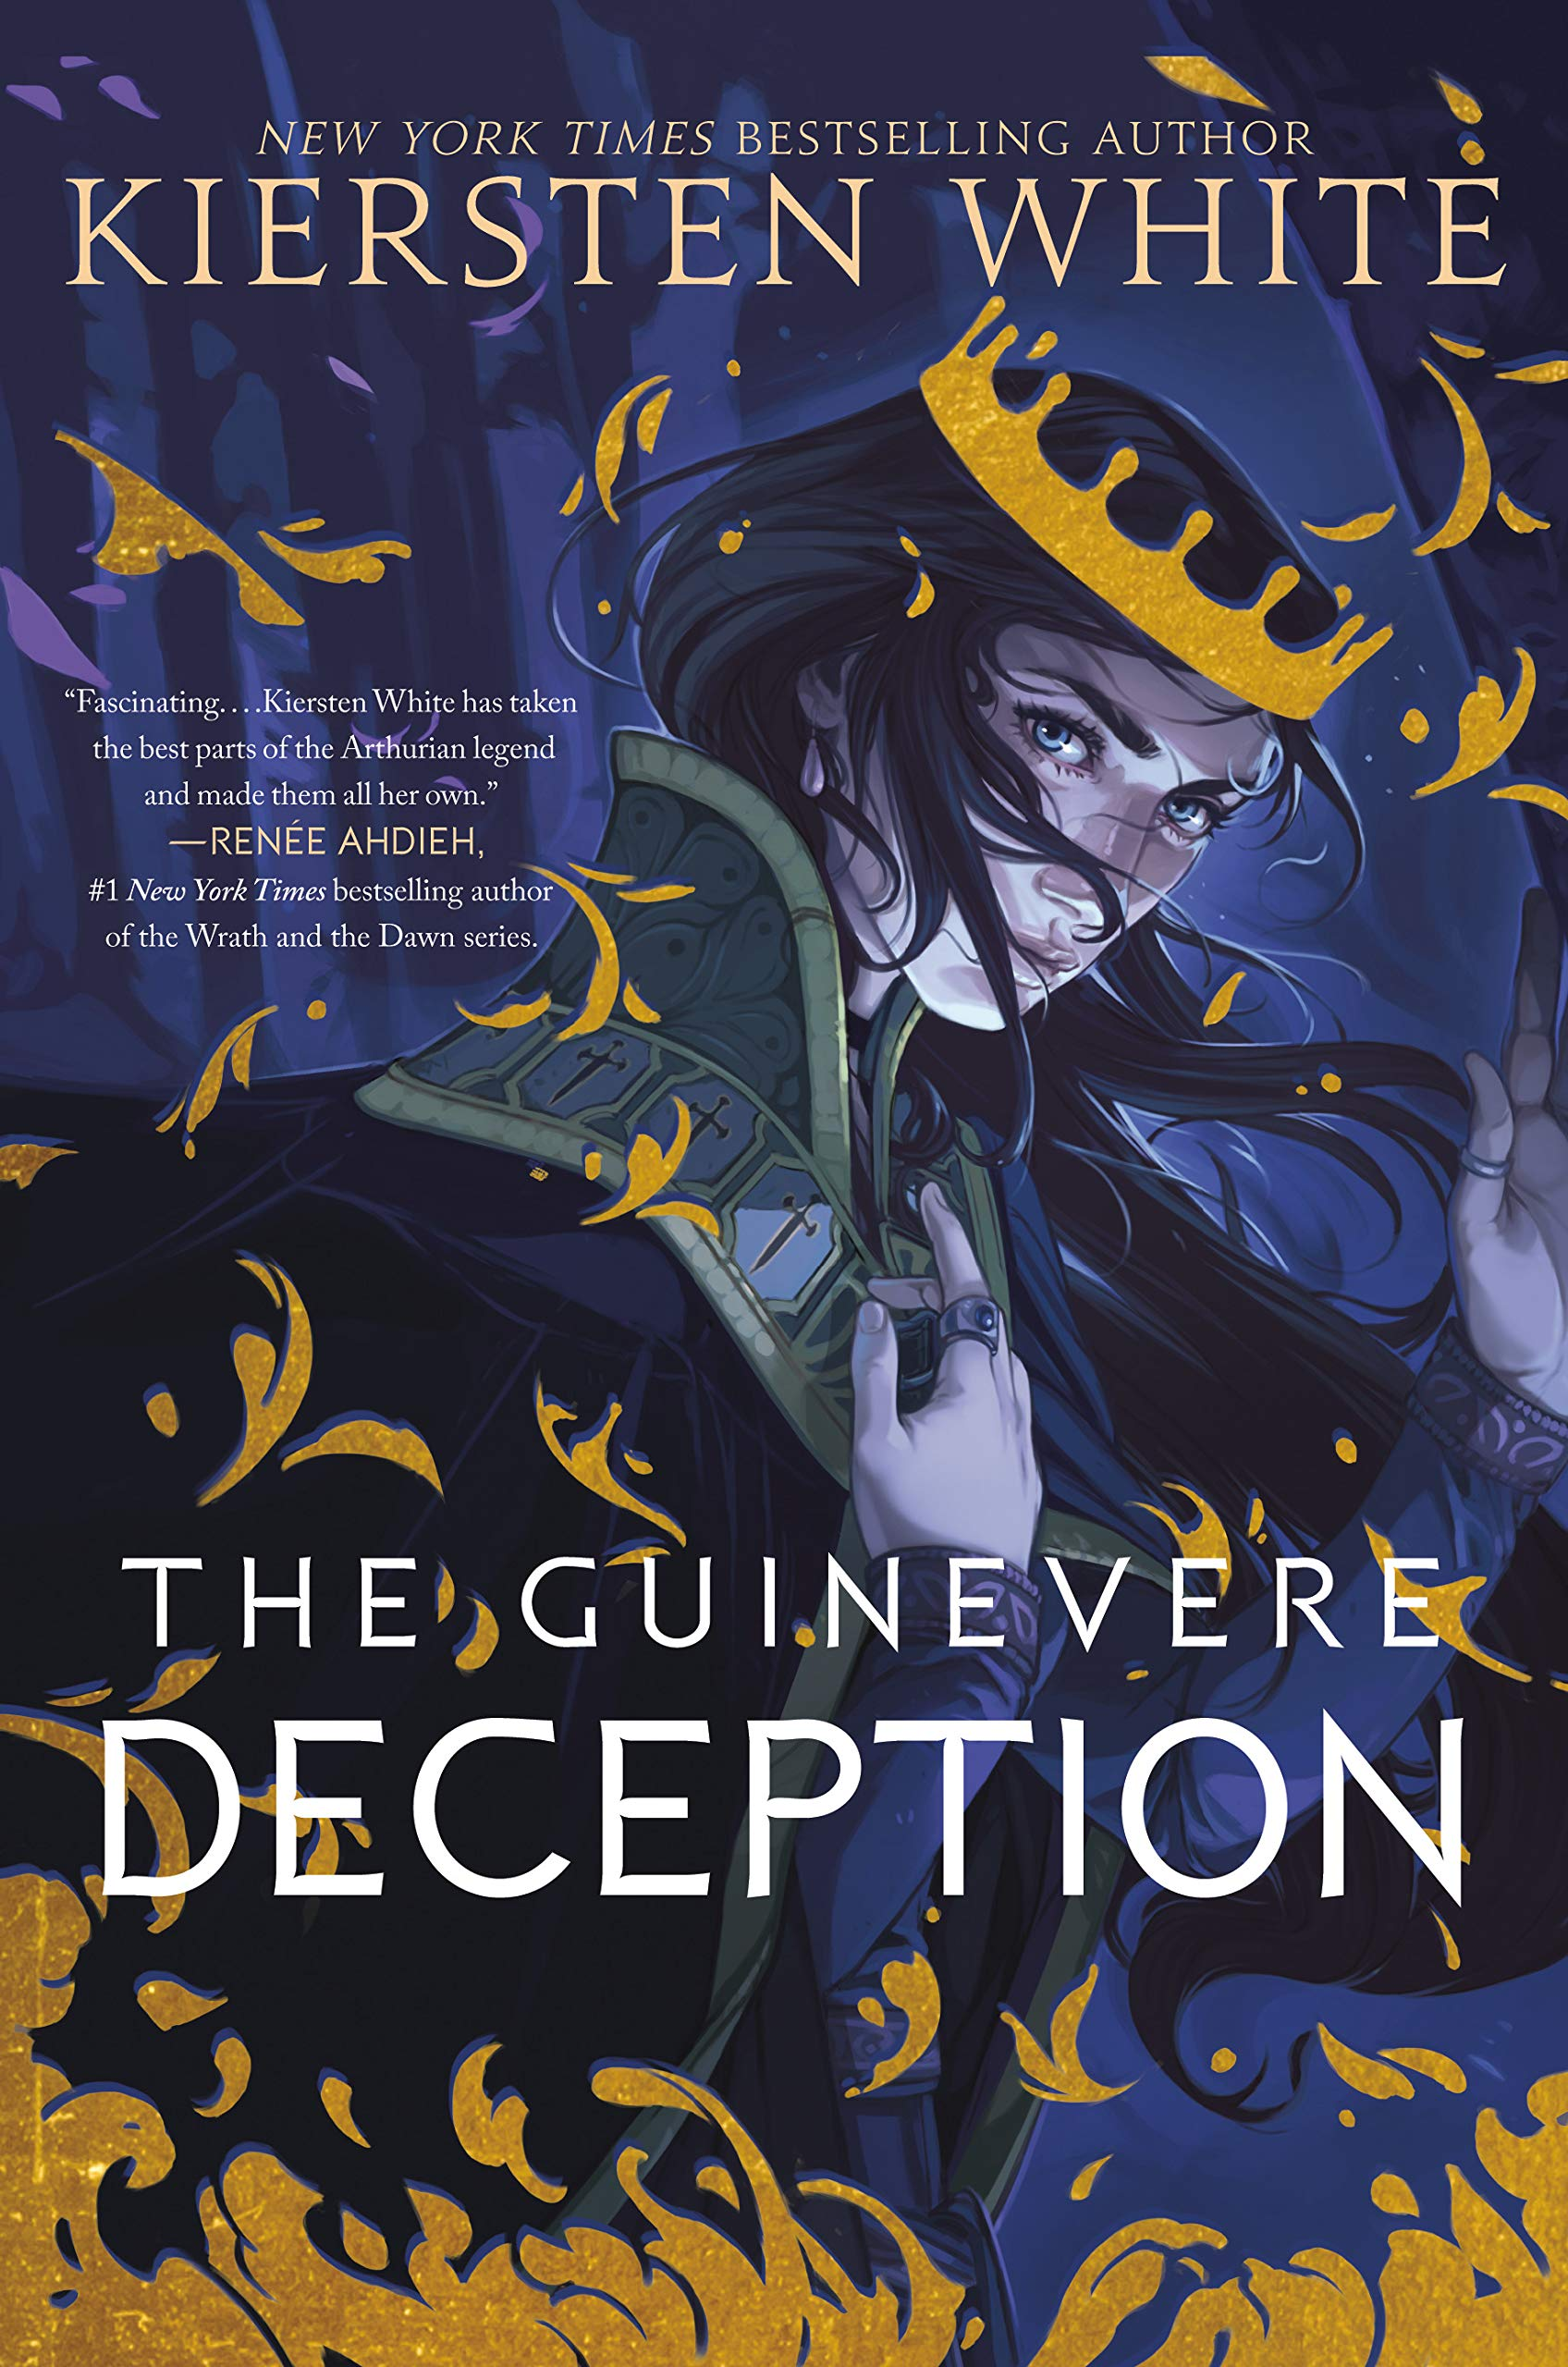 Amazon.com: The Guinevere Deception (Camelot Rising Trilogy ...